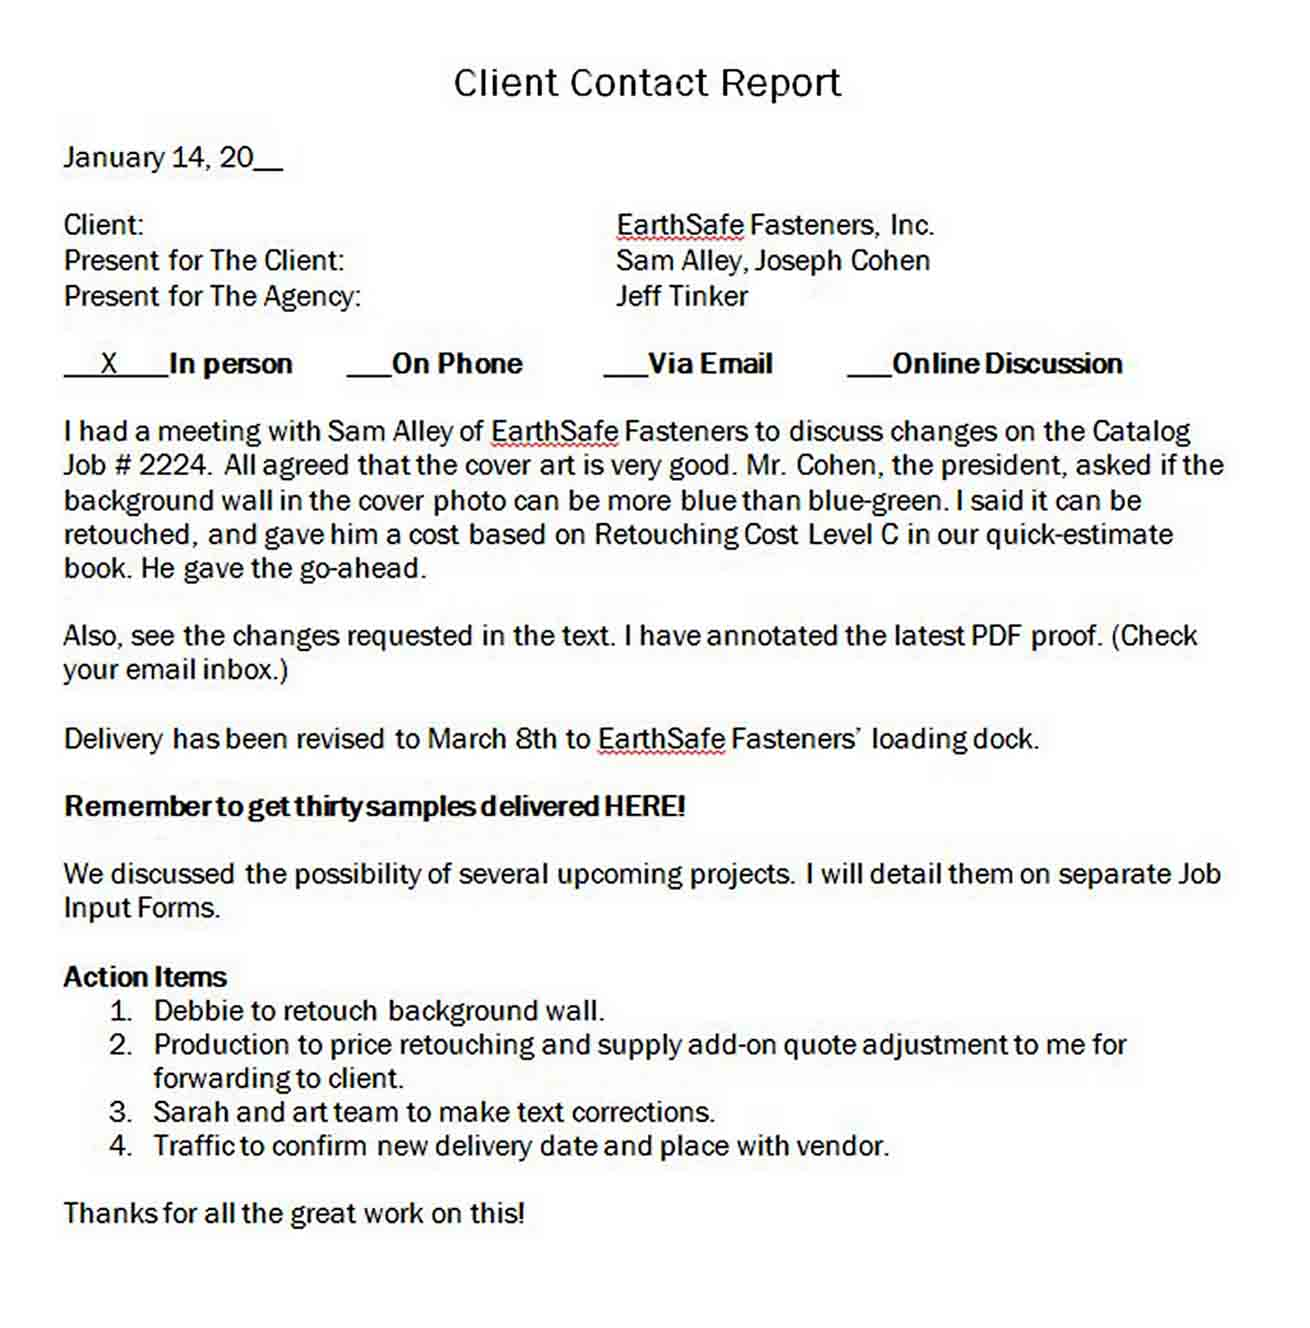 Client Contact Report sample